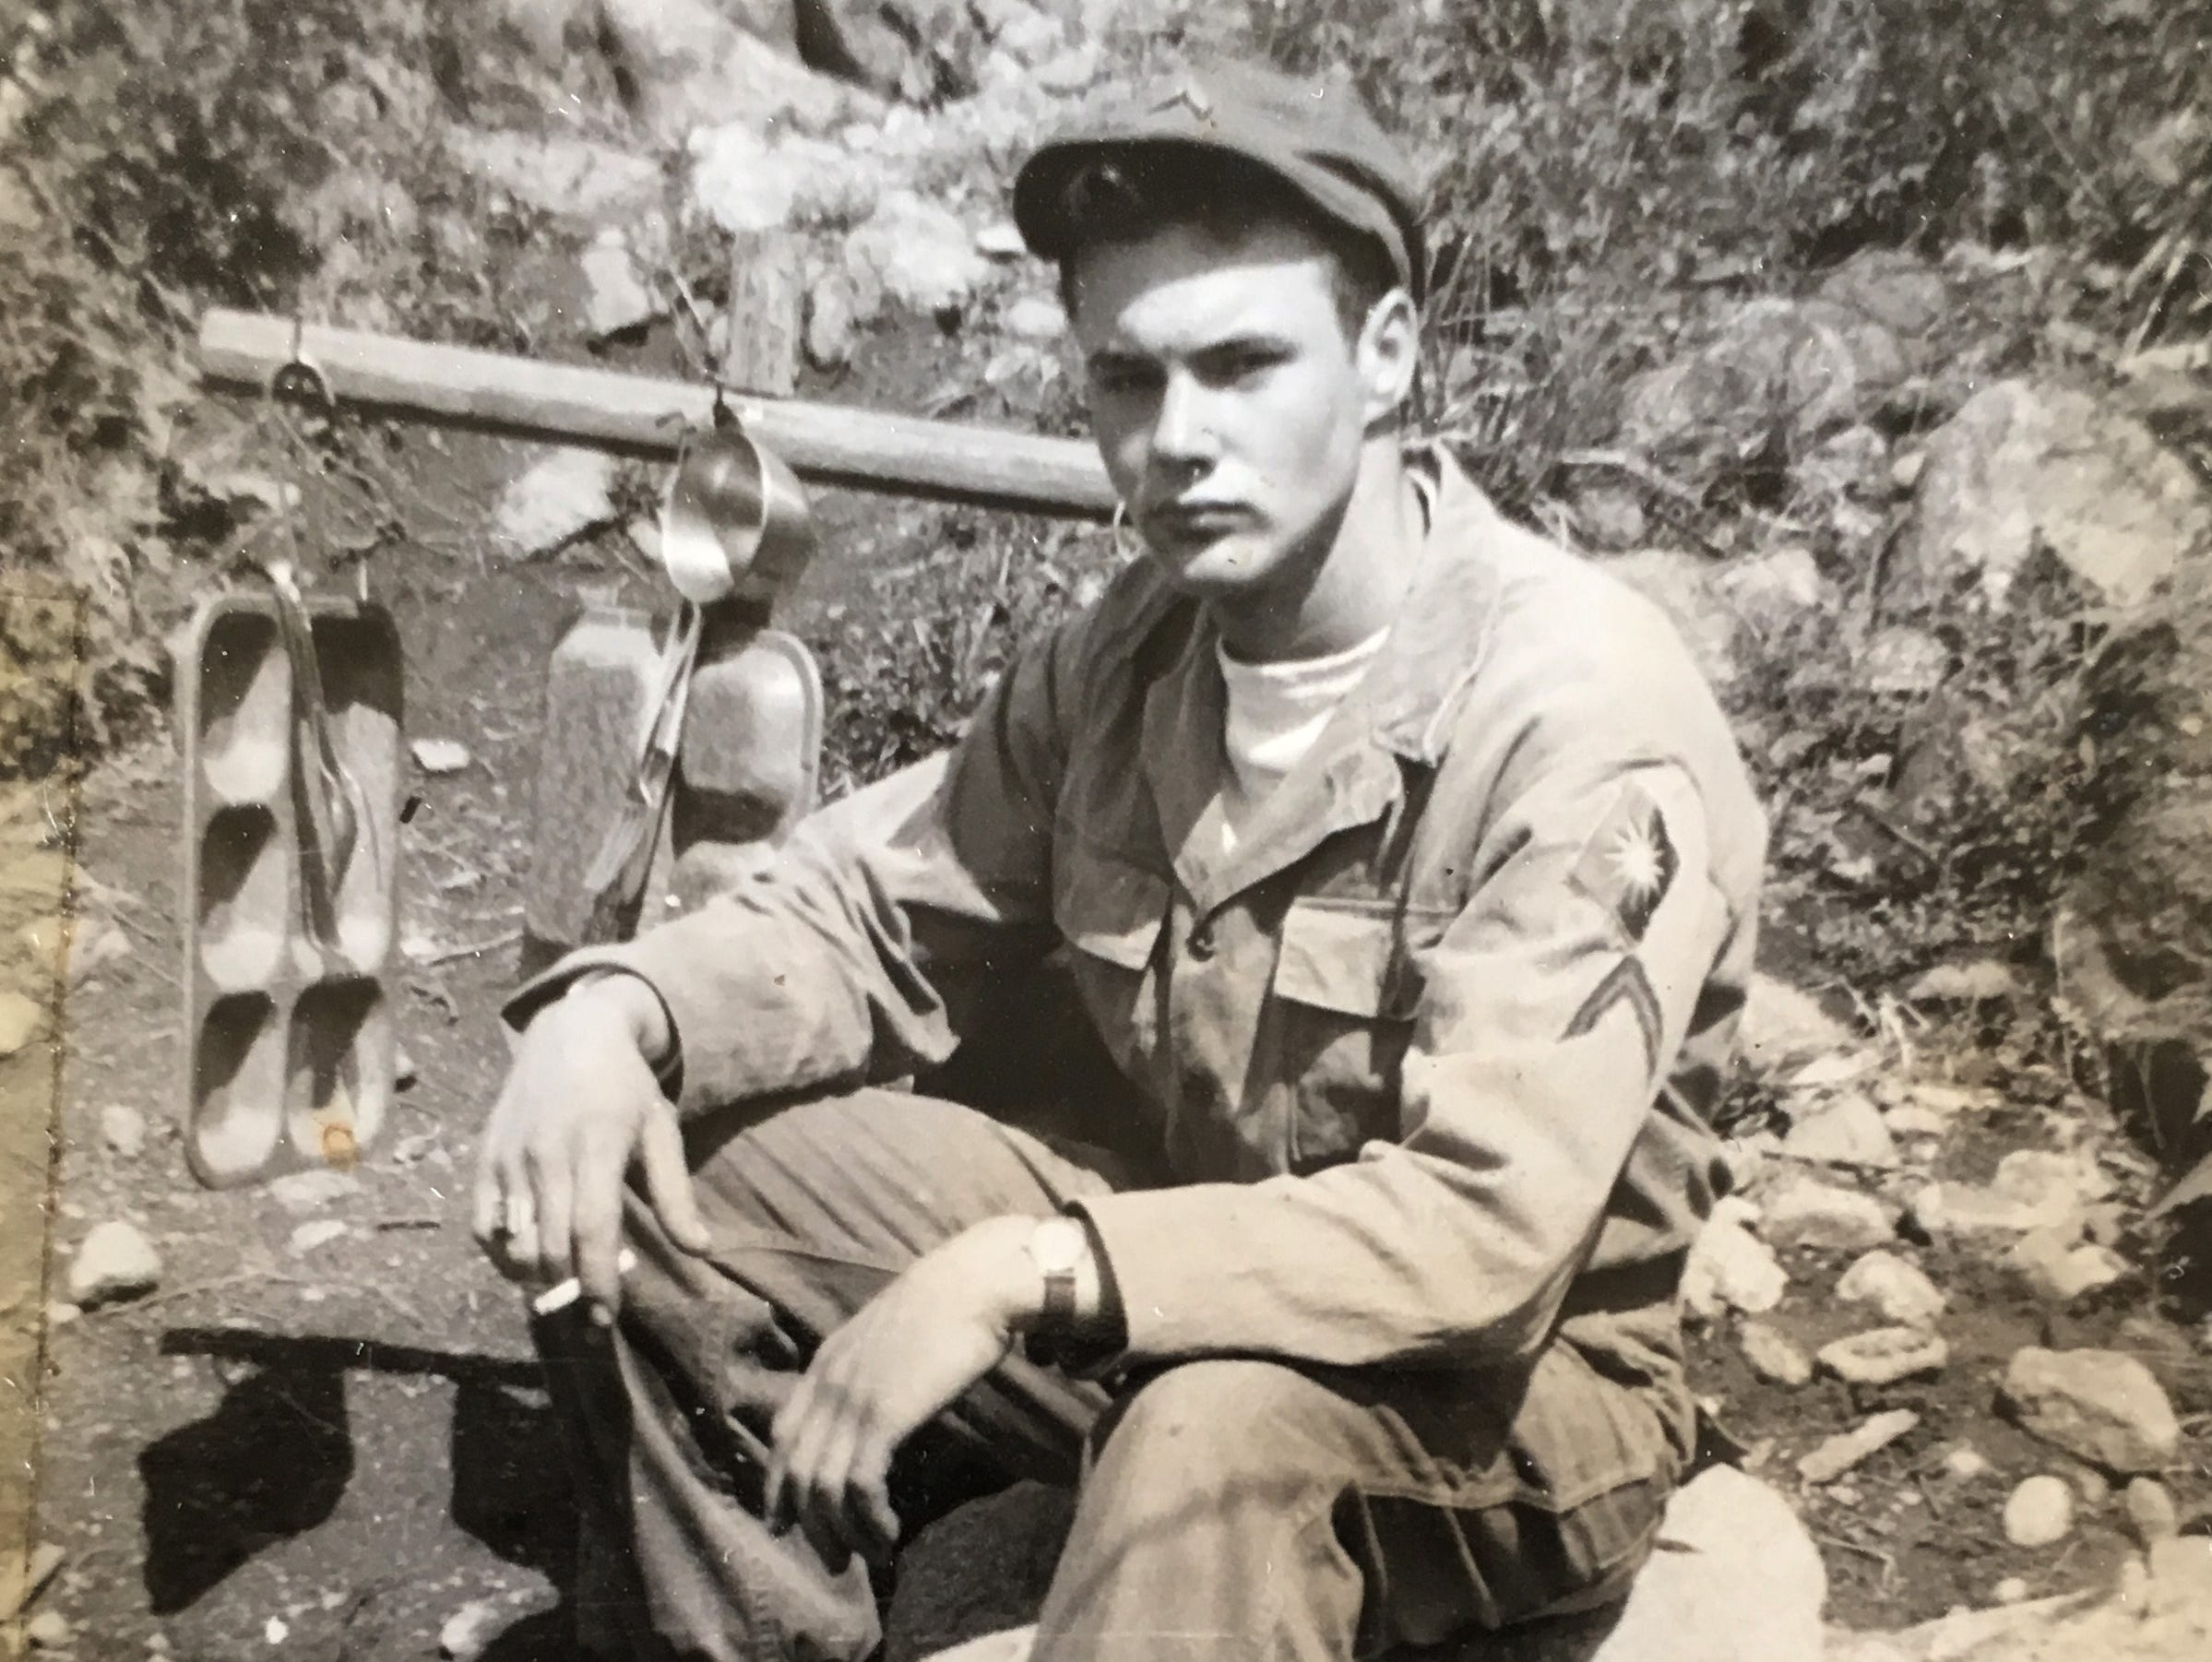 Edward Foose stayed on in Korea for roughly six months after the armistice signing and served in Army Reserves for six years after being discharged as a corporal. During his six months in Korea prior to coming home, Foose fixed up homes and helped rebuild.